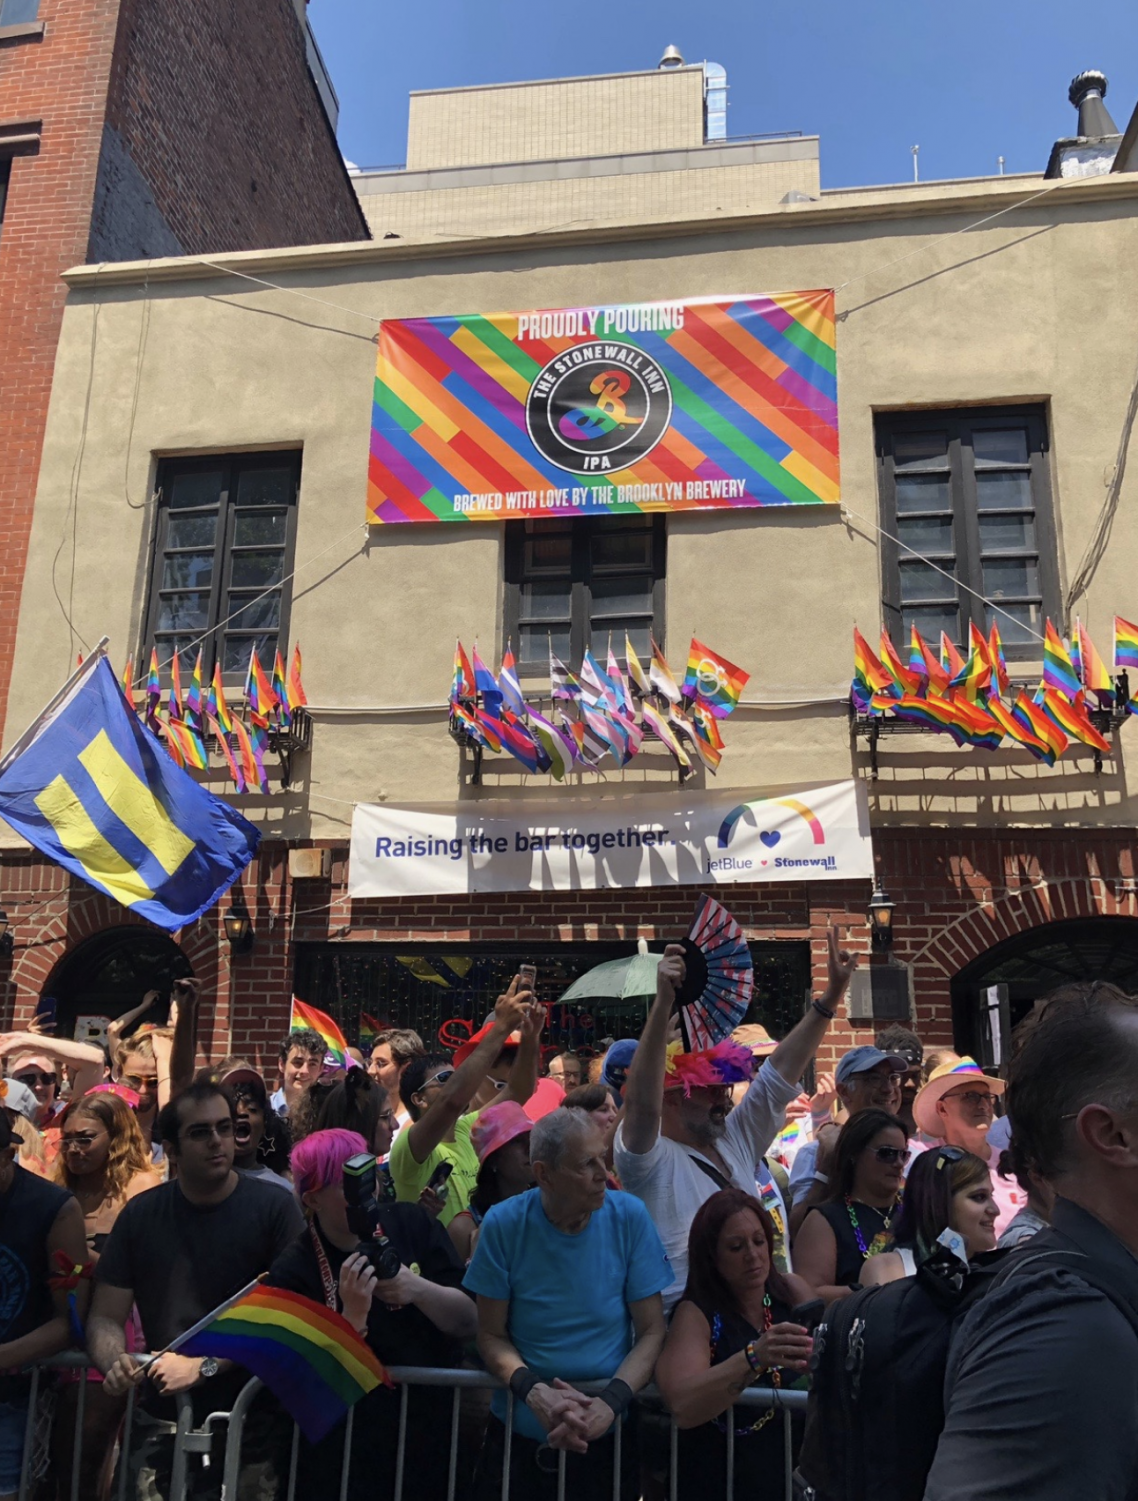 Pride participants celebrating outside of The Stonewall Inn, where the modern gay rights movement began in 1969.